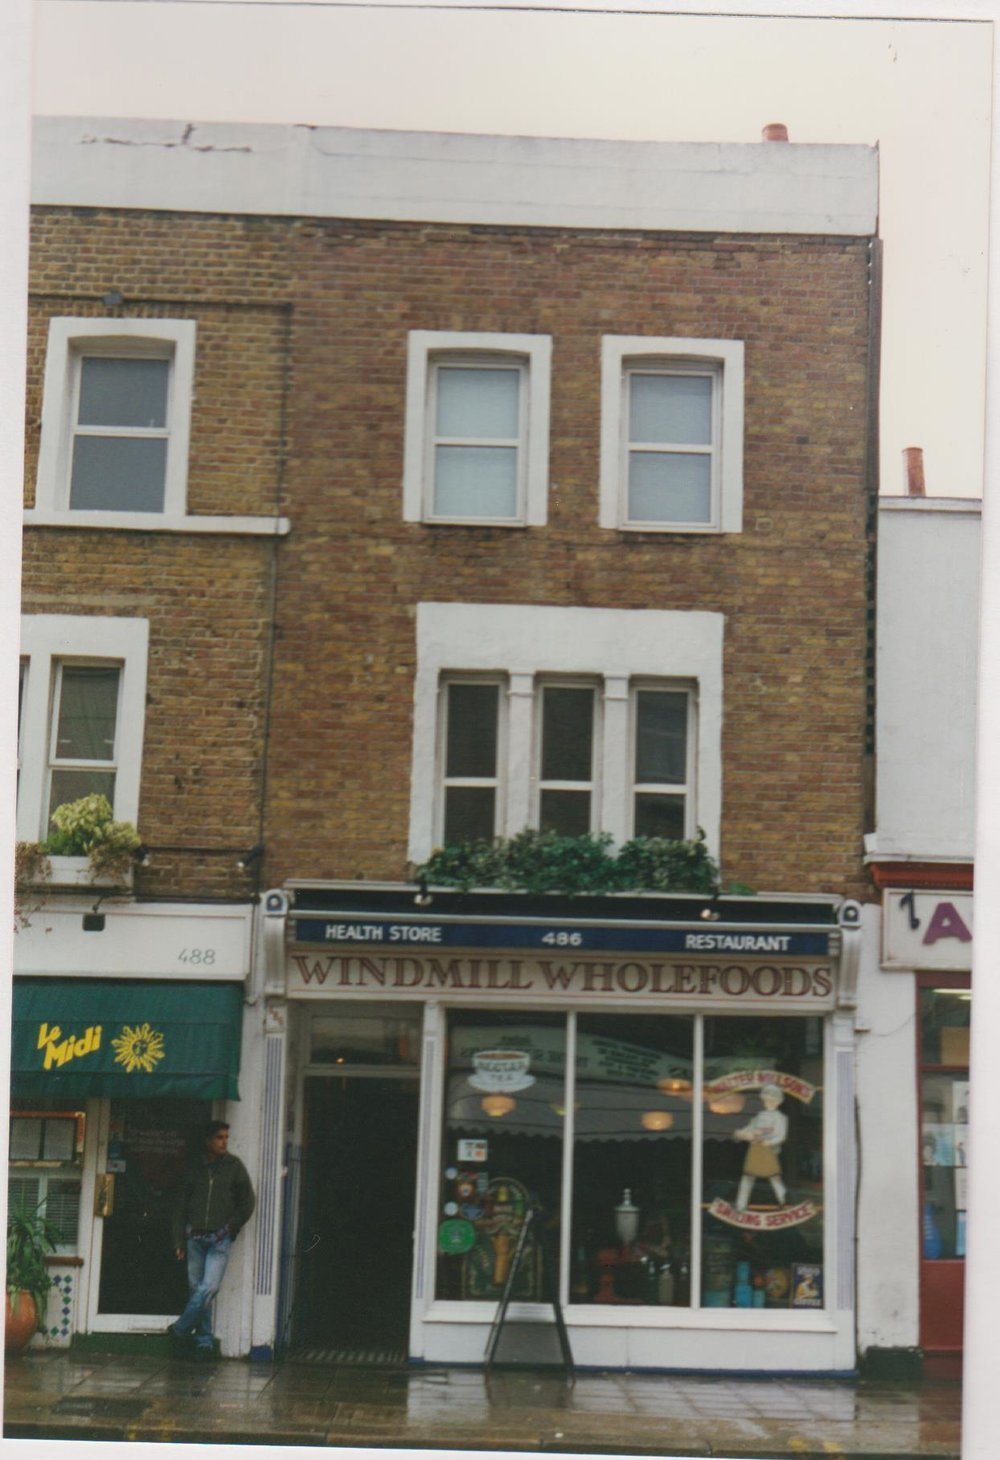 Windmill Wholefoods shop on the Fulham road in the early 1980s